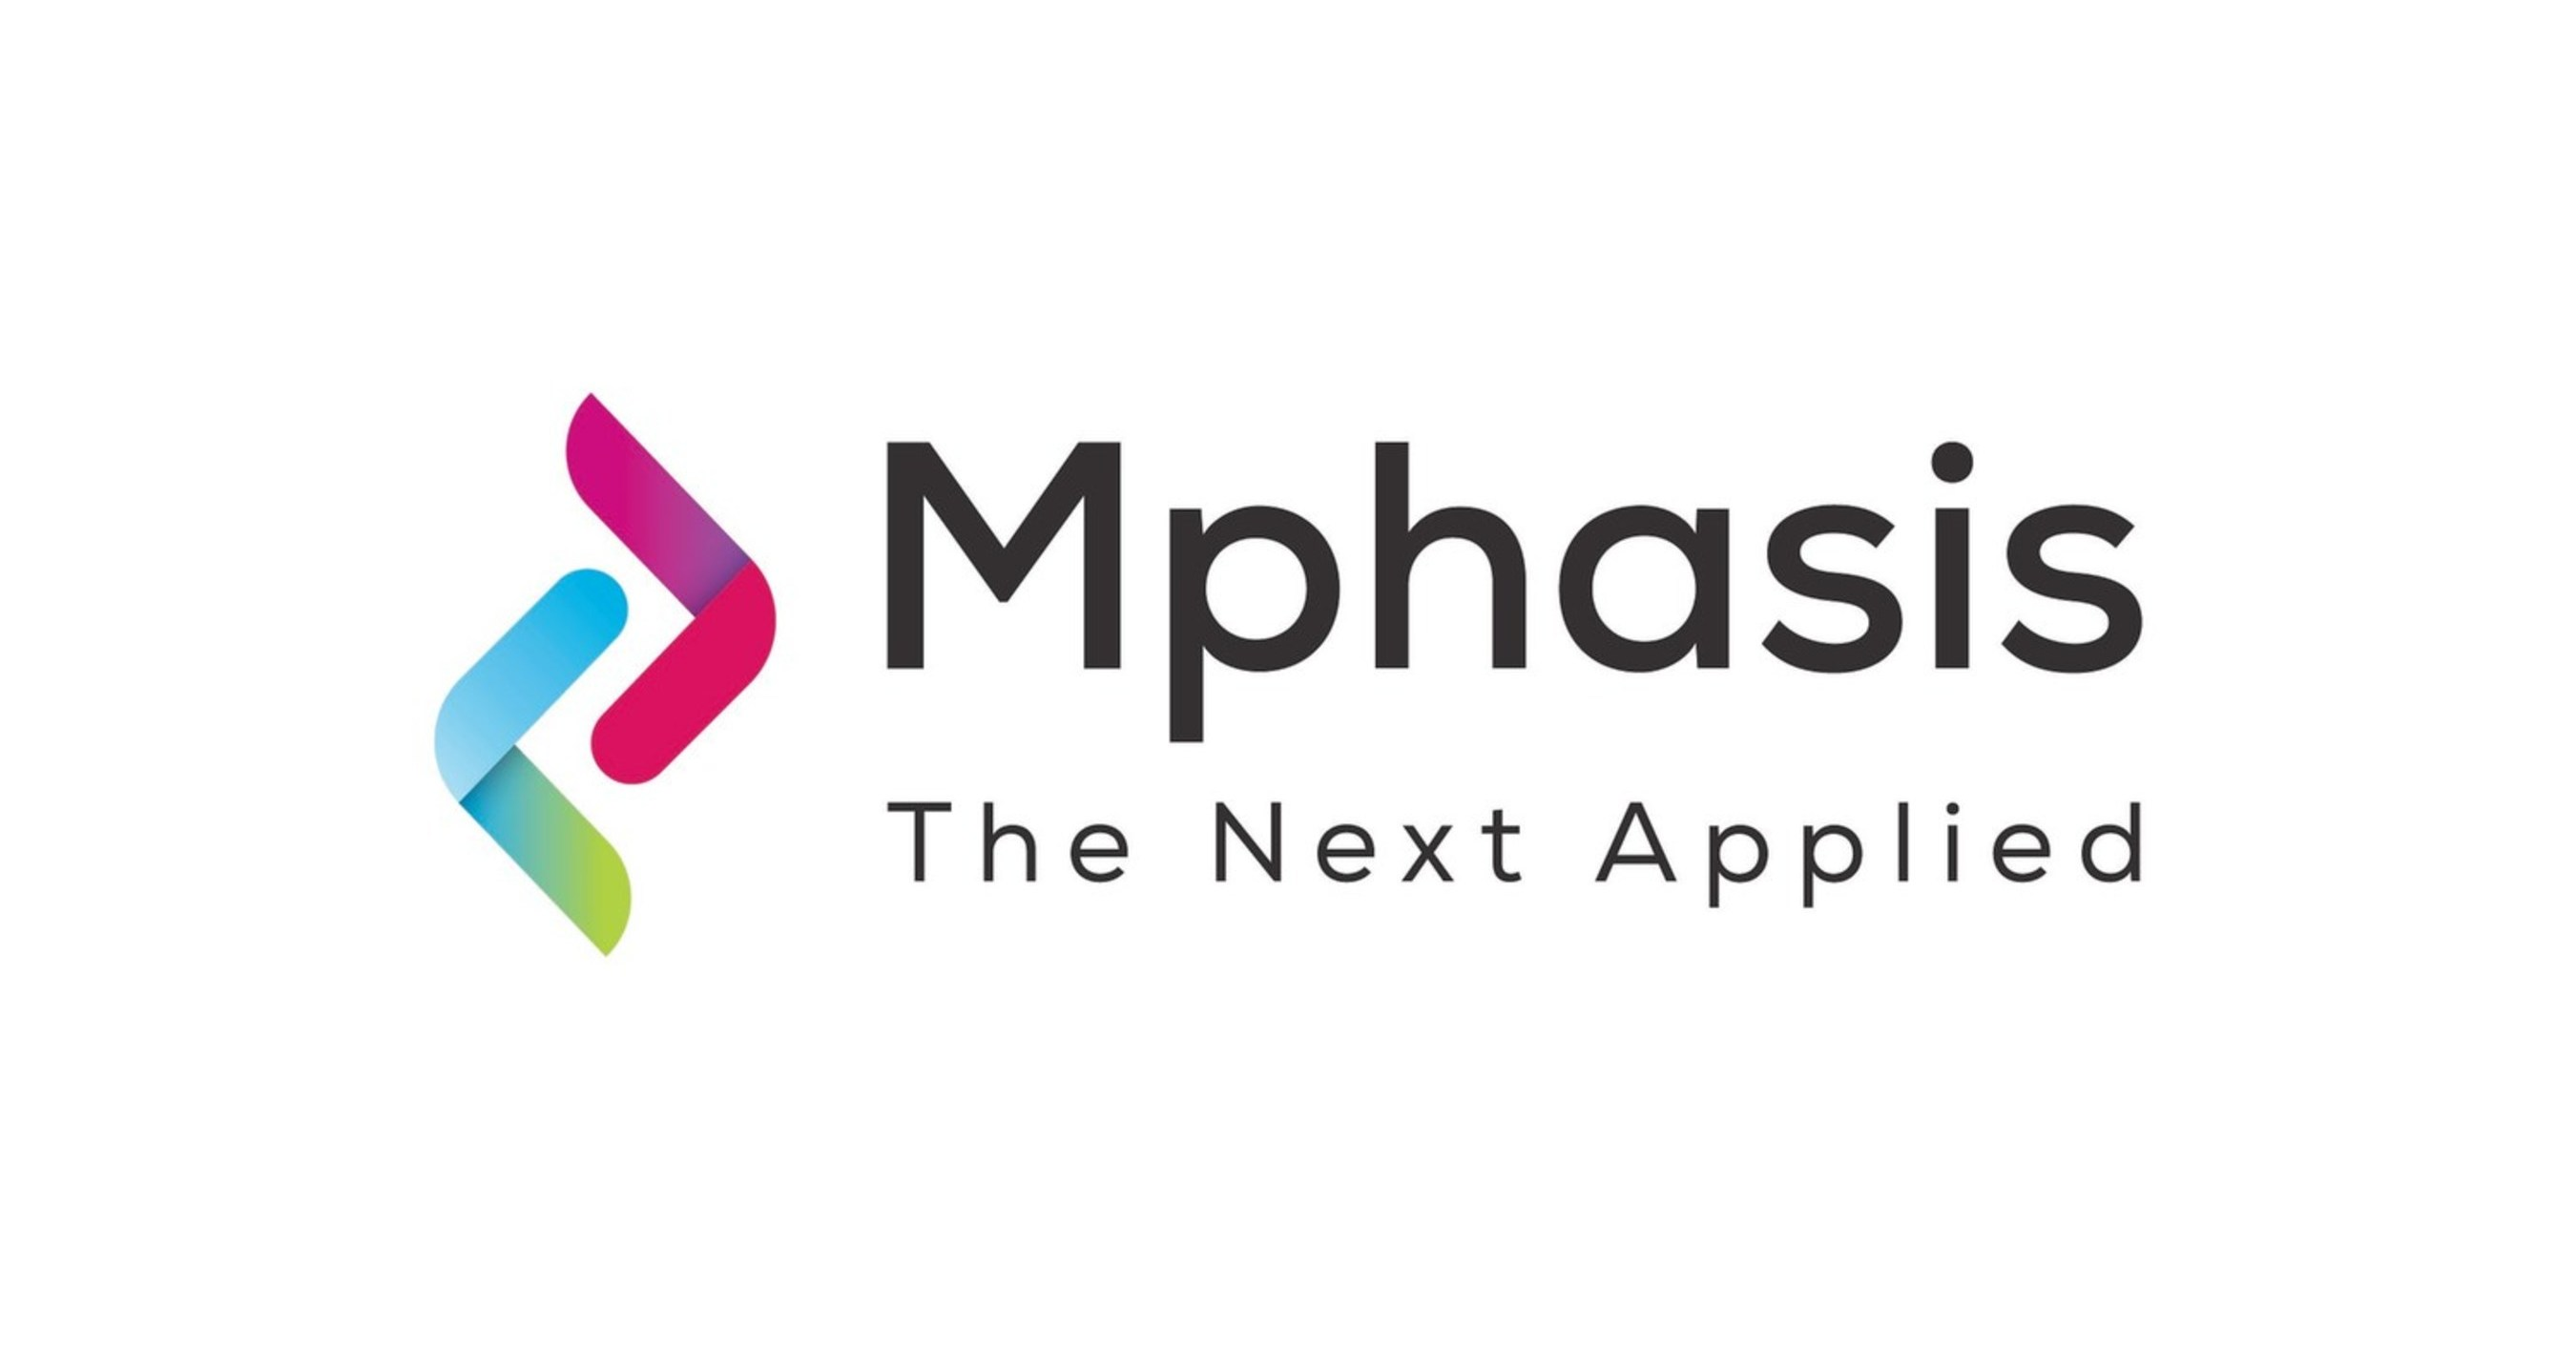 Mphasis Opens Hi-tech Wireless Chamber in Bangalore to Test Next-Generation  Wireless Applications